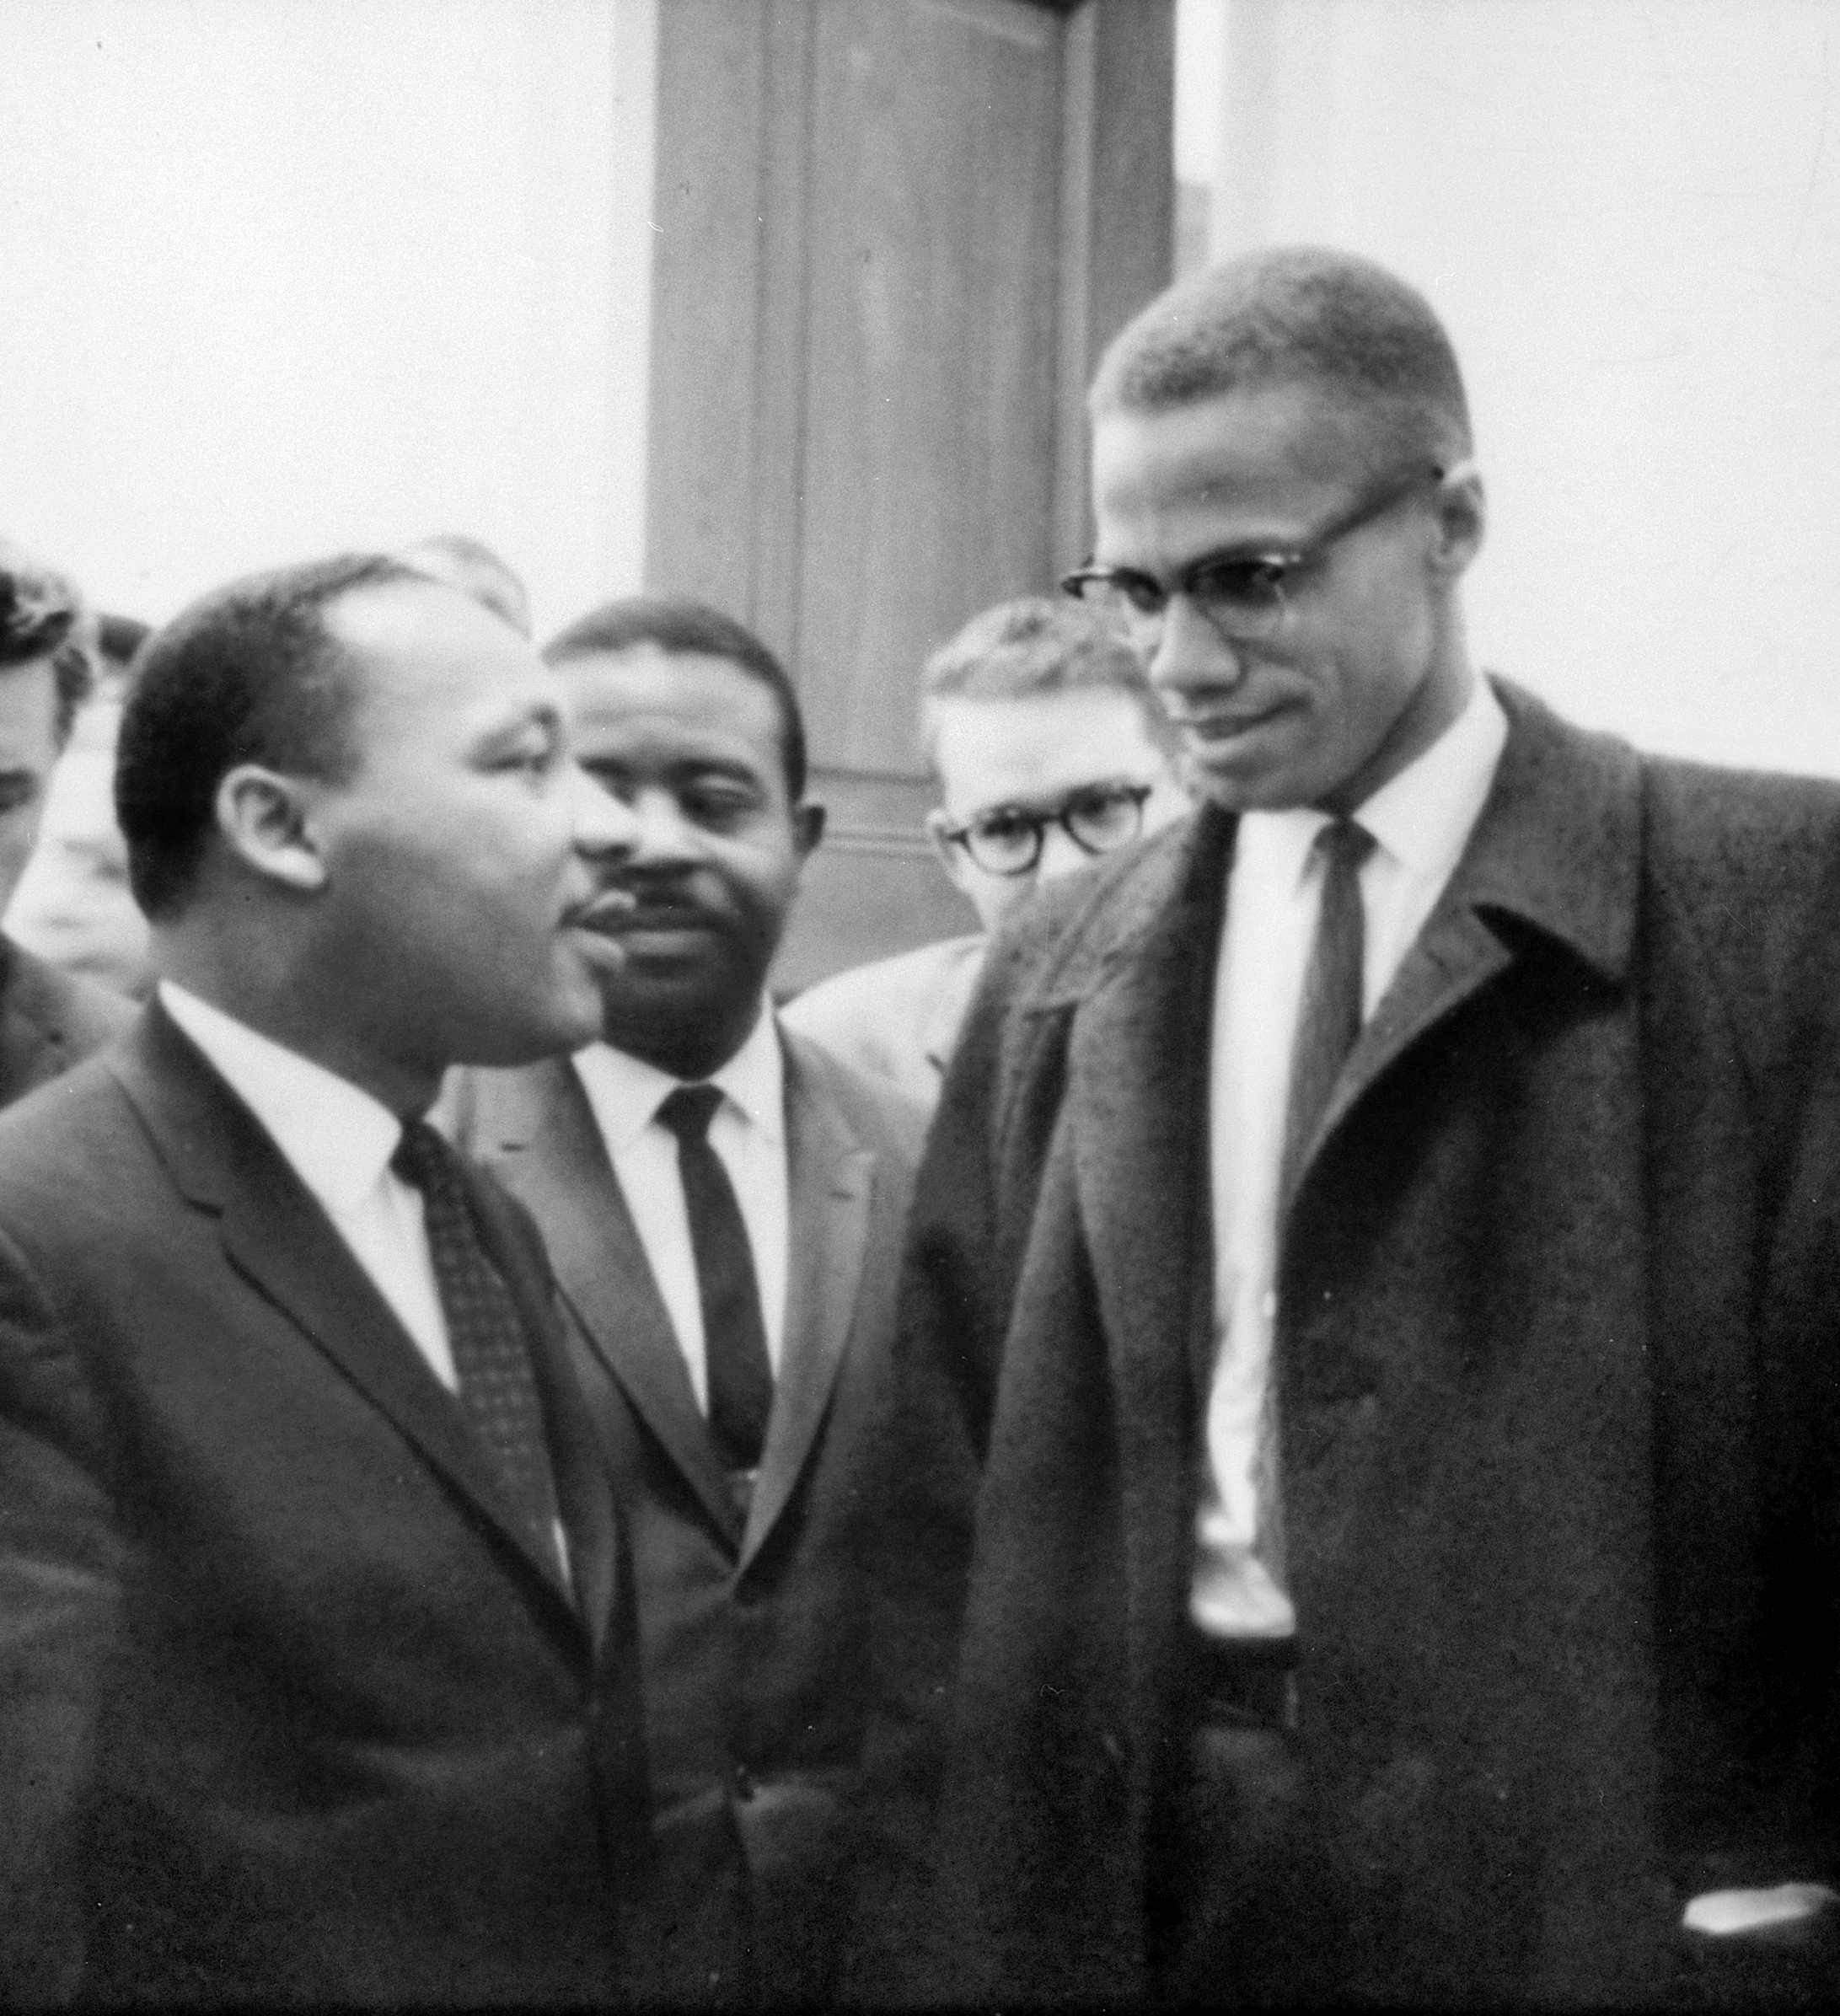 King and Malcolm X